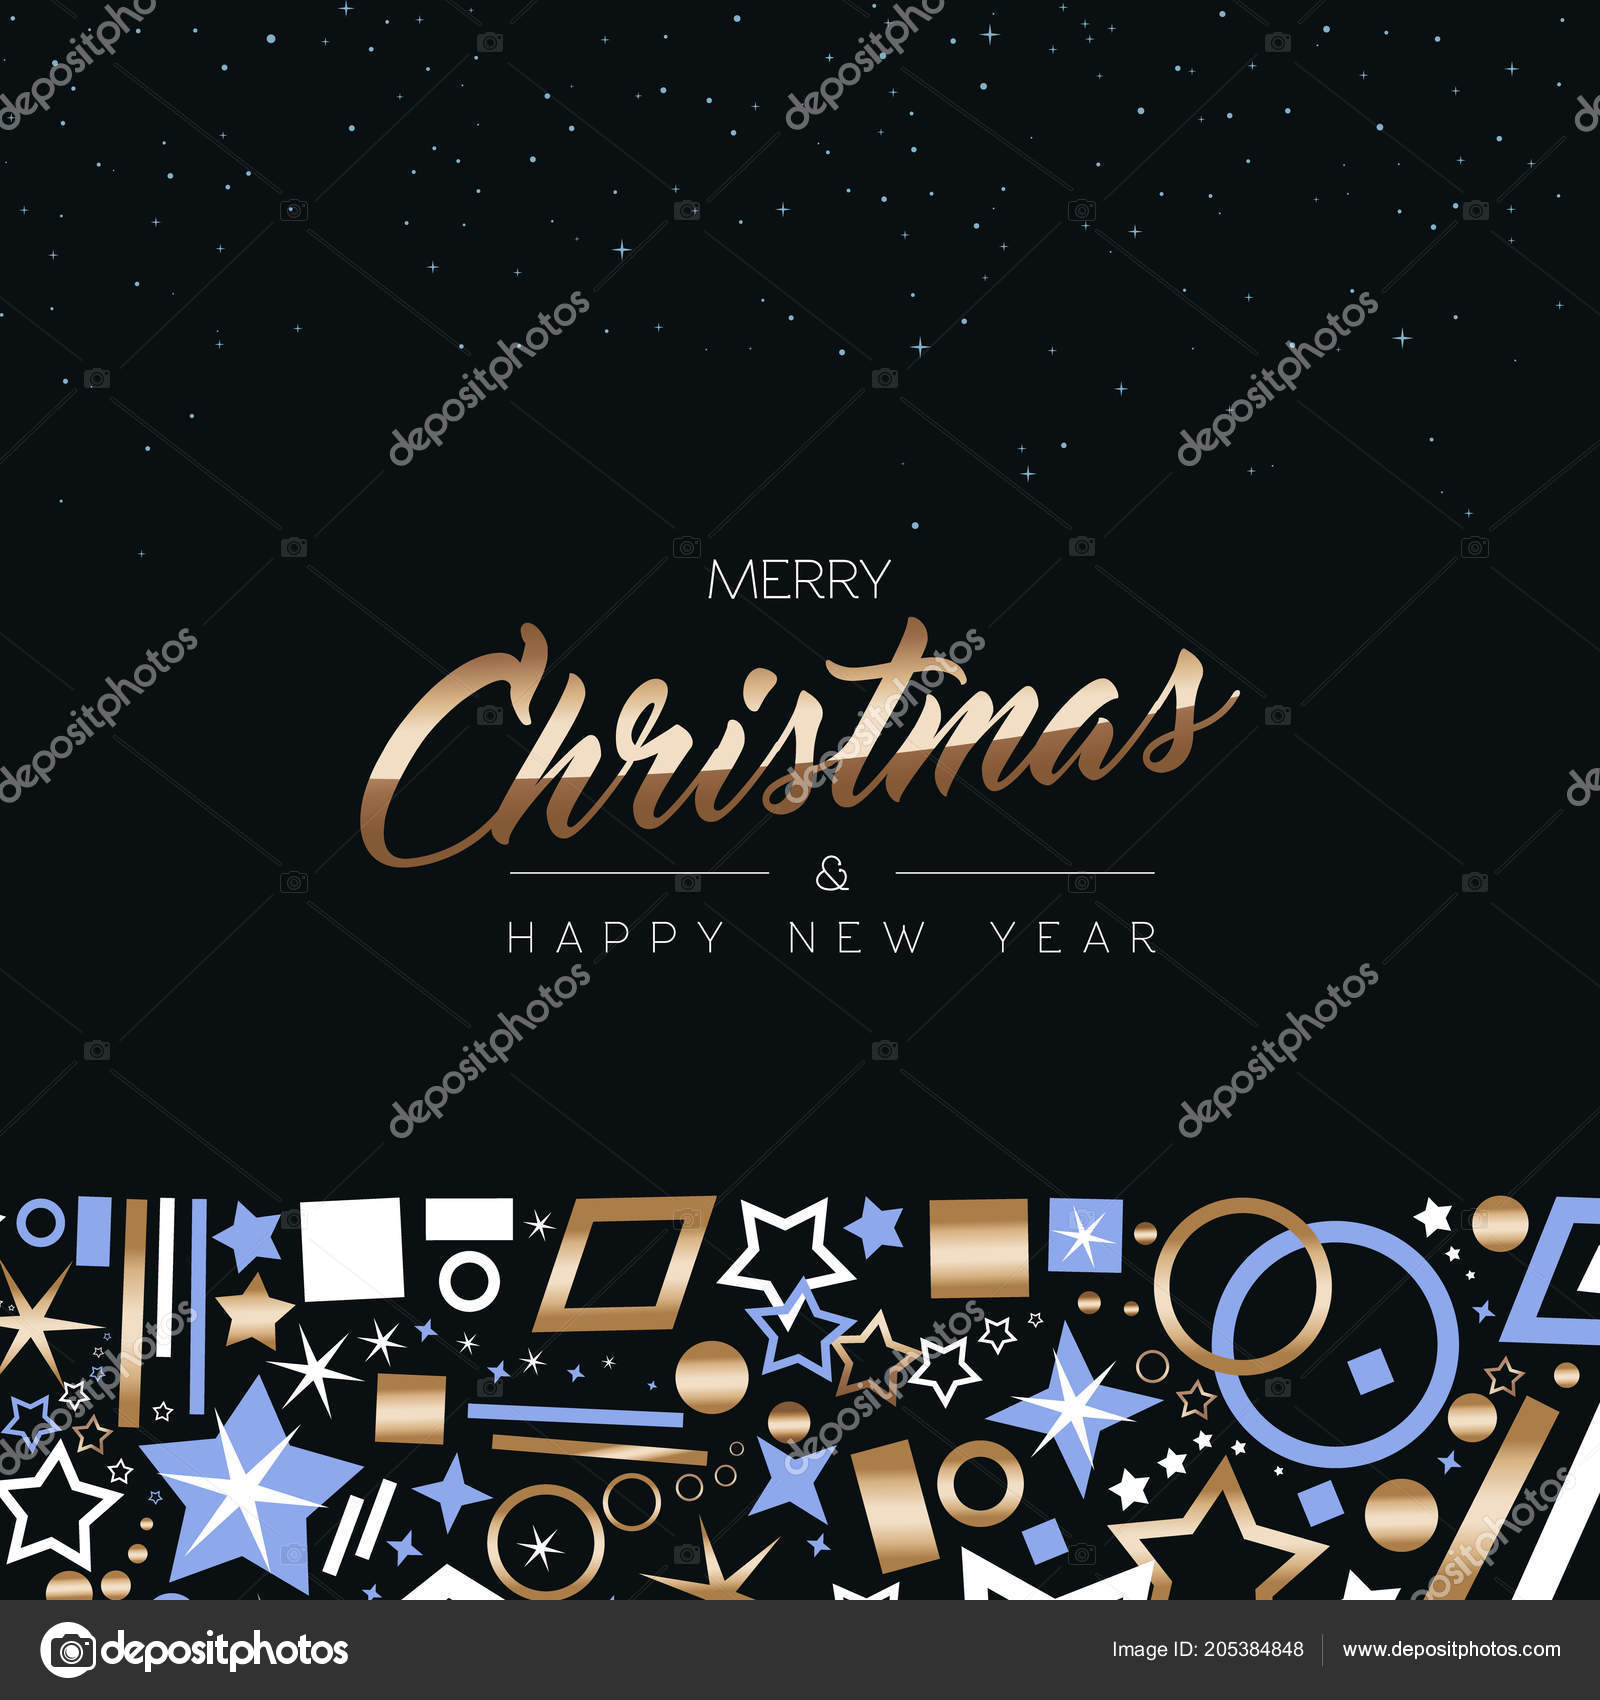 Merry Christmas Happy New Year Greeting Card Design Elegant Copper